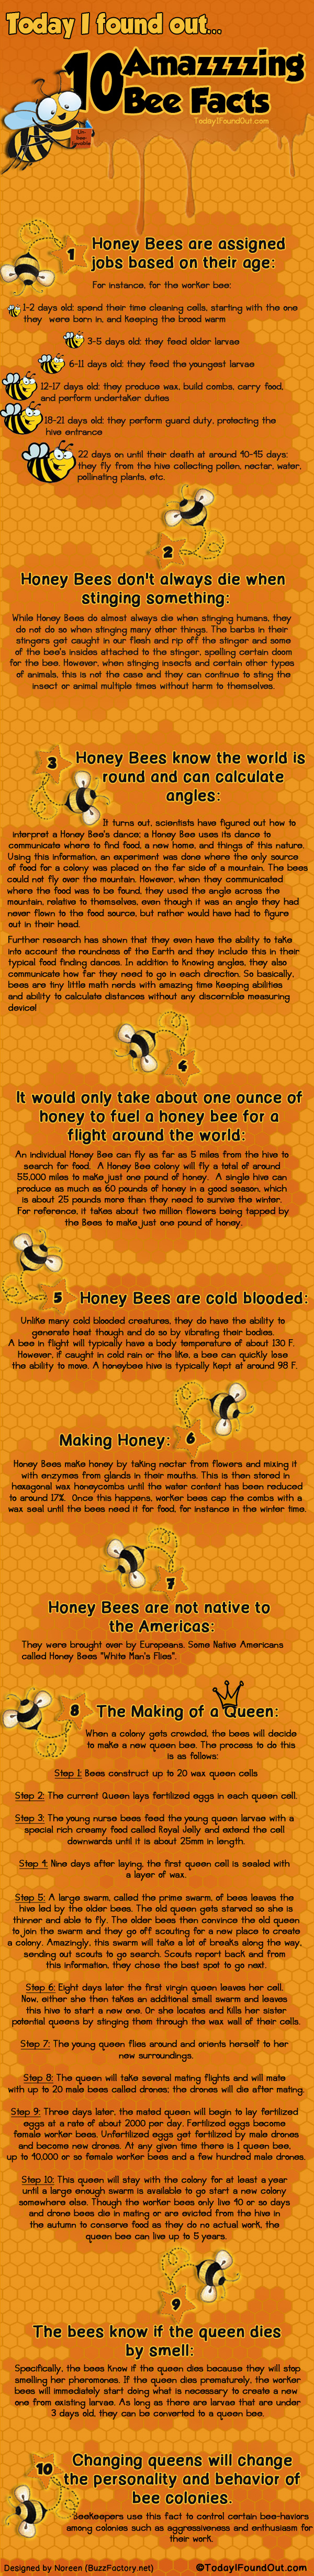 10 Amazzzzing Bee Facts Infographic on muwasalat.com